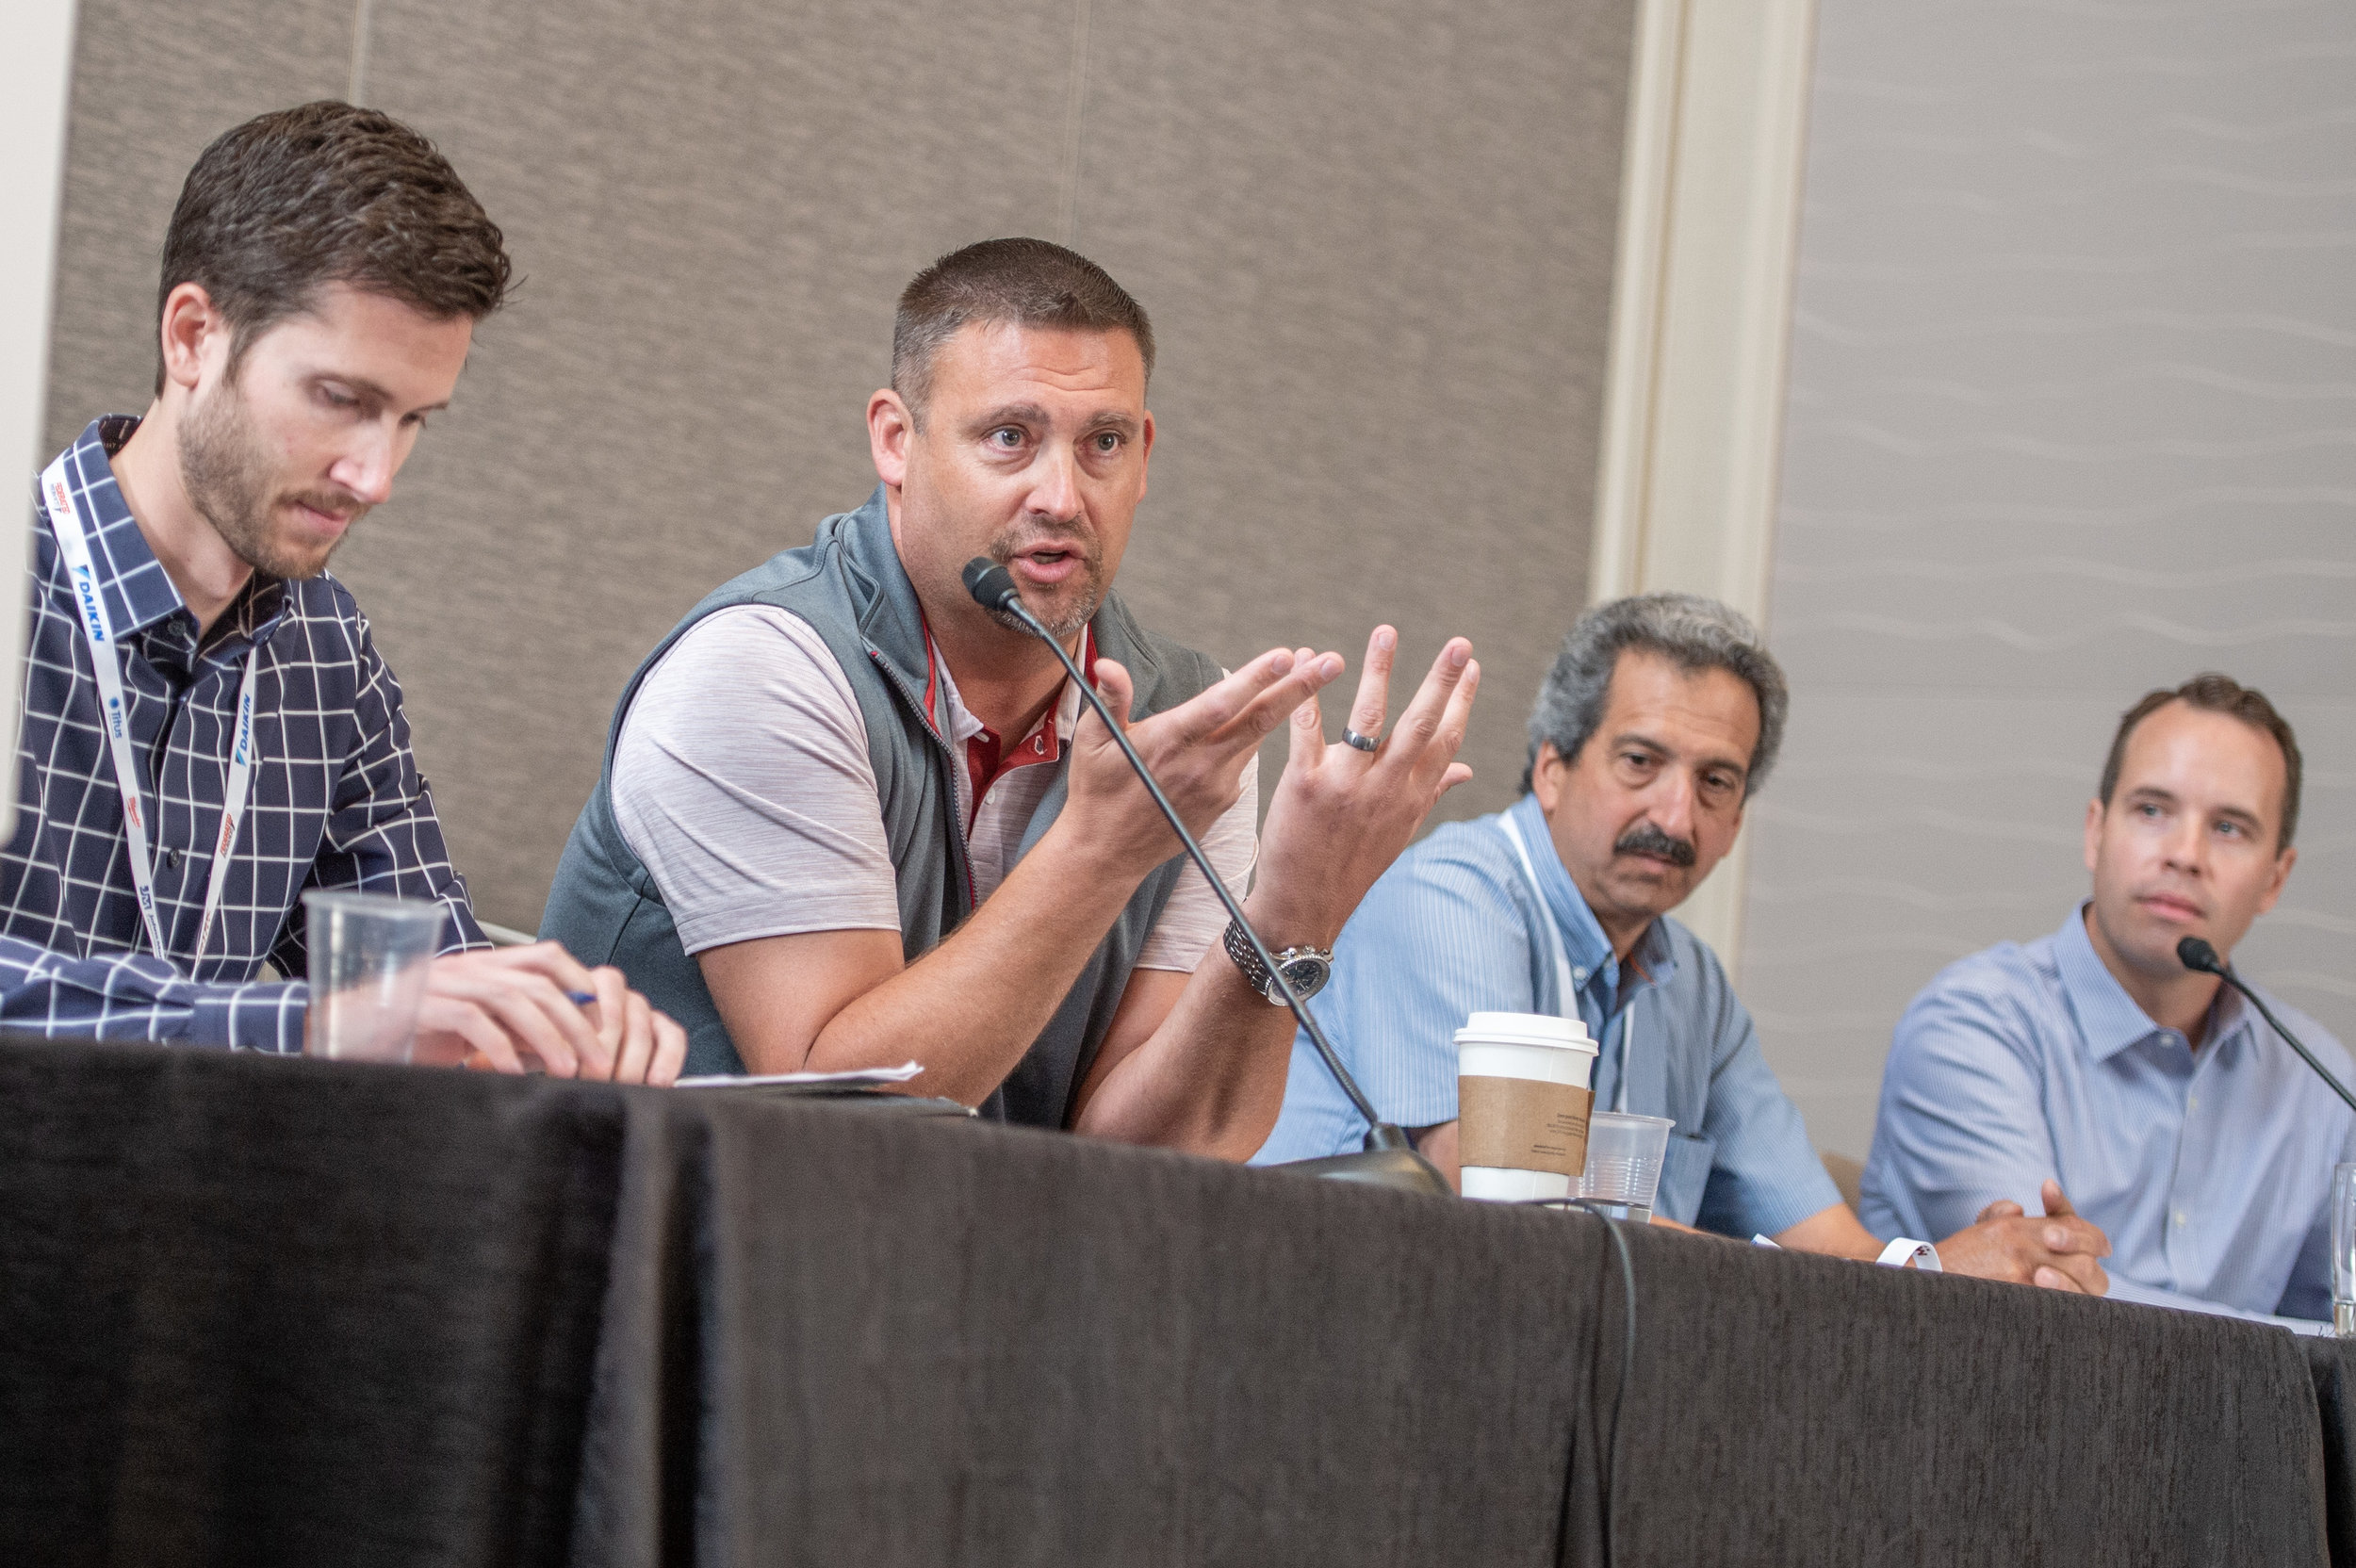 The panel for the HVAC forum had SMCI's Brandon Bratz (The Waldinger Corporation, first seated panelist on the left) and Corey Chestnut (Climate Engineers, last panelist on the right) participating. Great job Brandon and Corey!